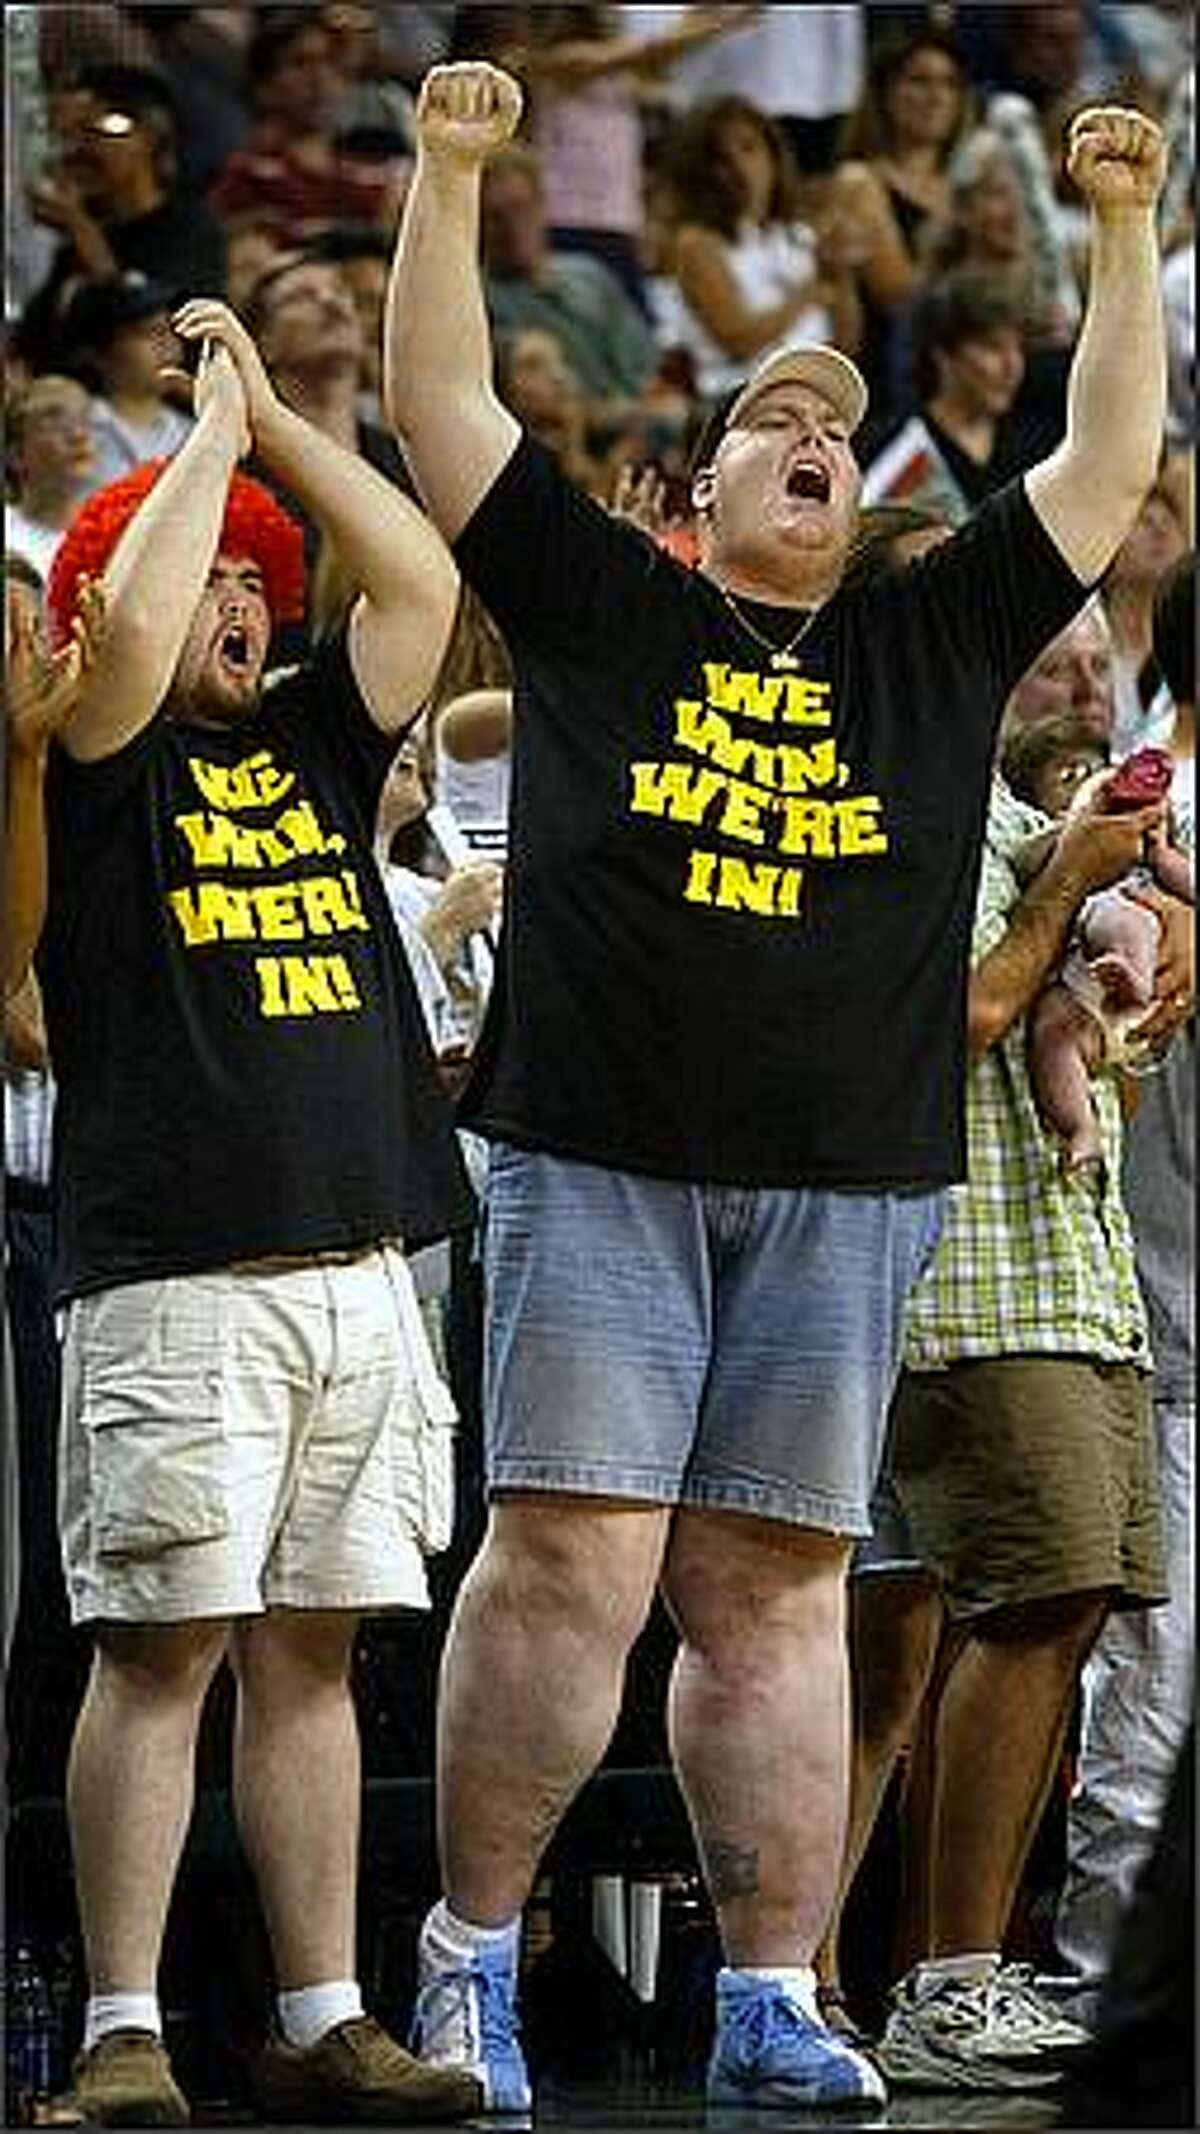 08/14/02 storm12 spts Seattle Storm fans Ian Murray and Lorin Sandretzky show their support late in the game against the Utah Starzz as the Storm beats them and gets their first playoff berth. Photo by Paul Kitagaki Jr./Seattle Post-Intelligencer (For Sports section - no reporter assigned)